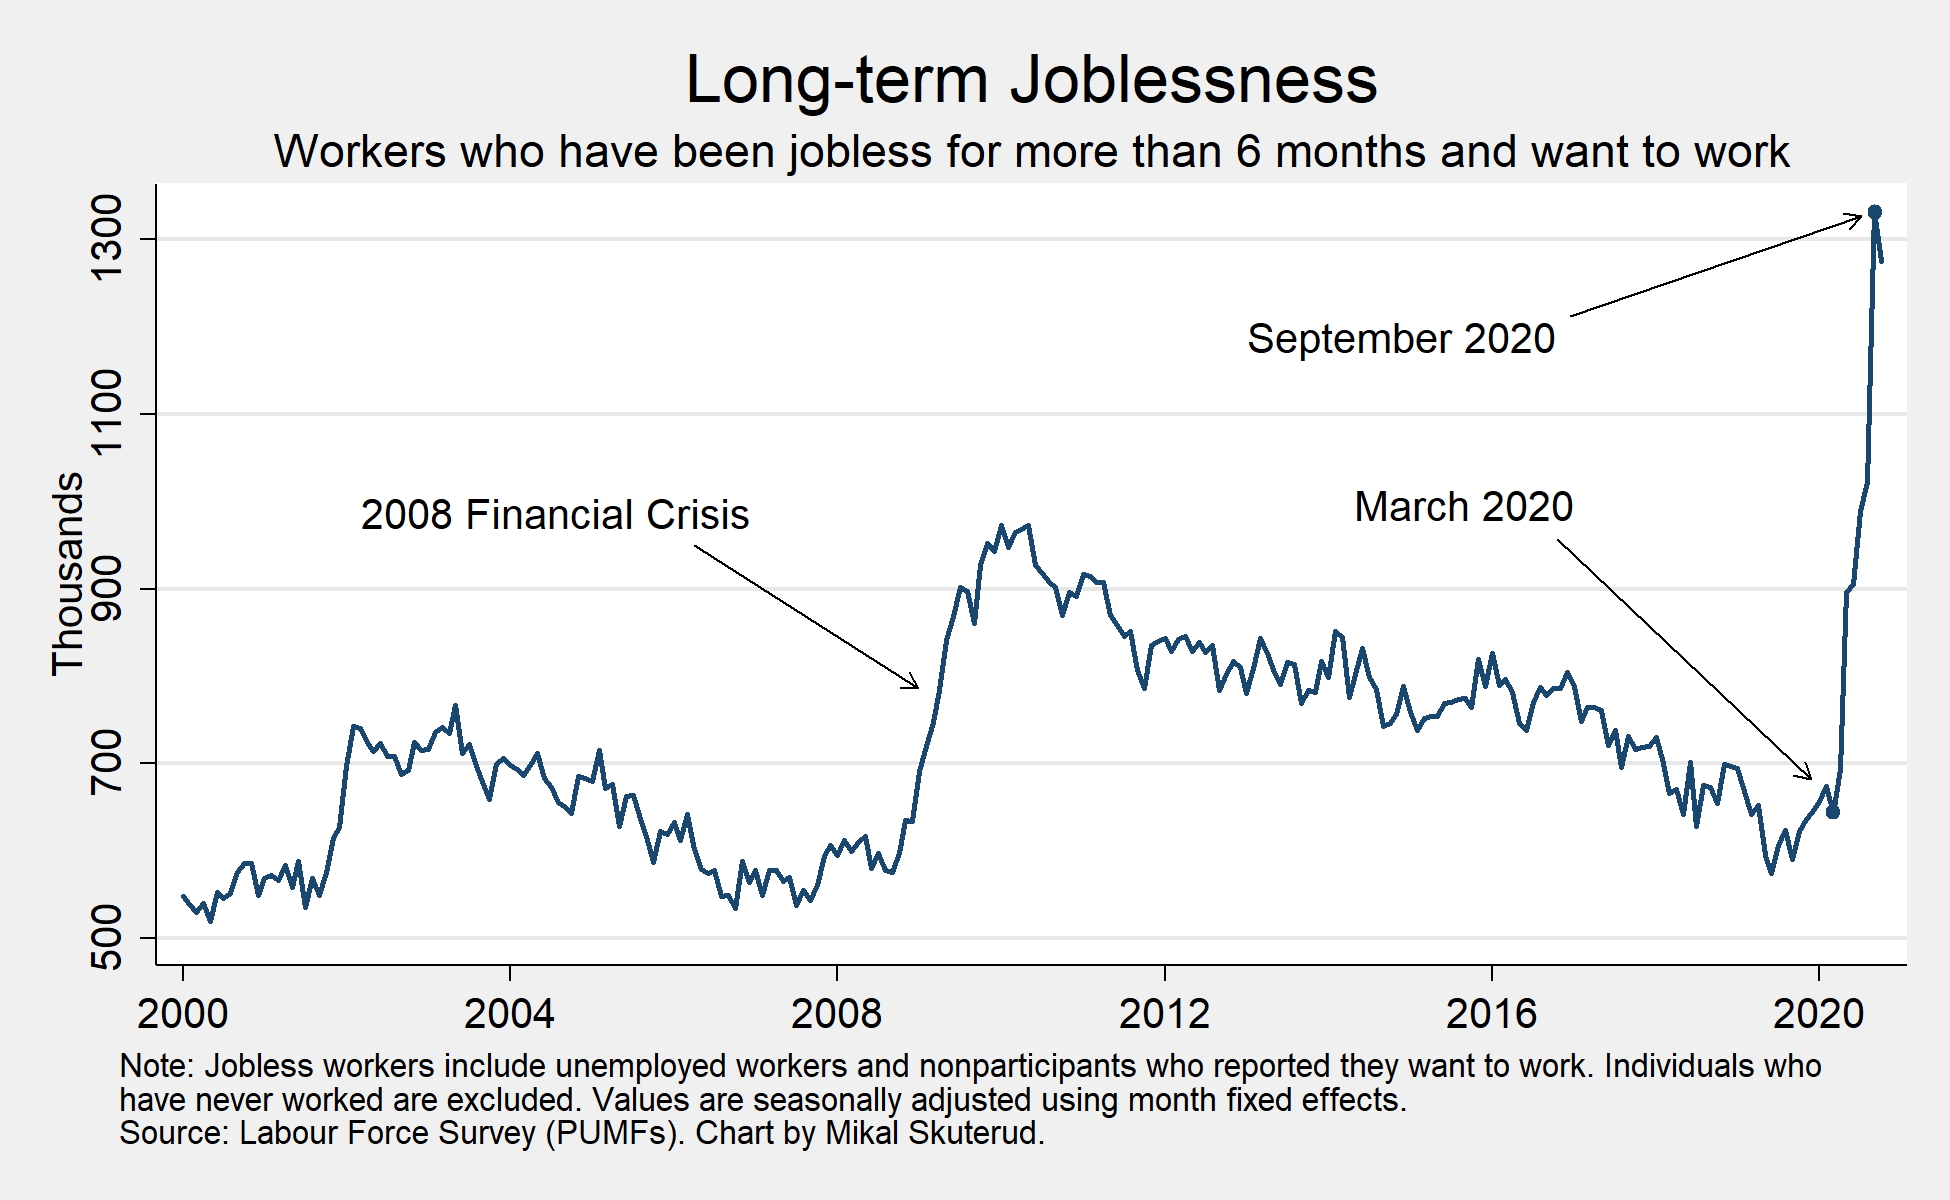 Chart showing long-term unemployment in Canada